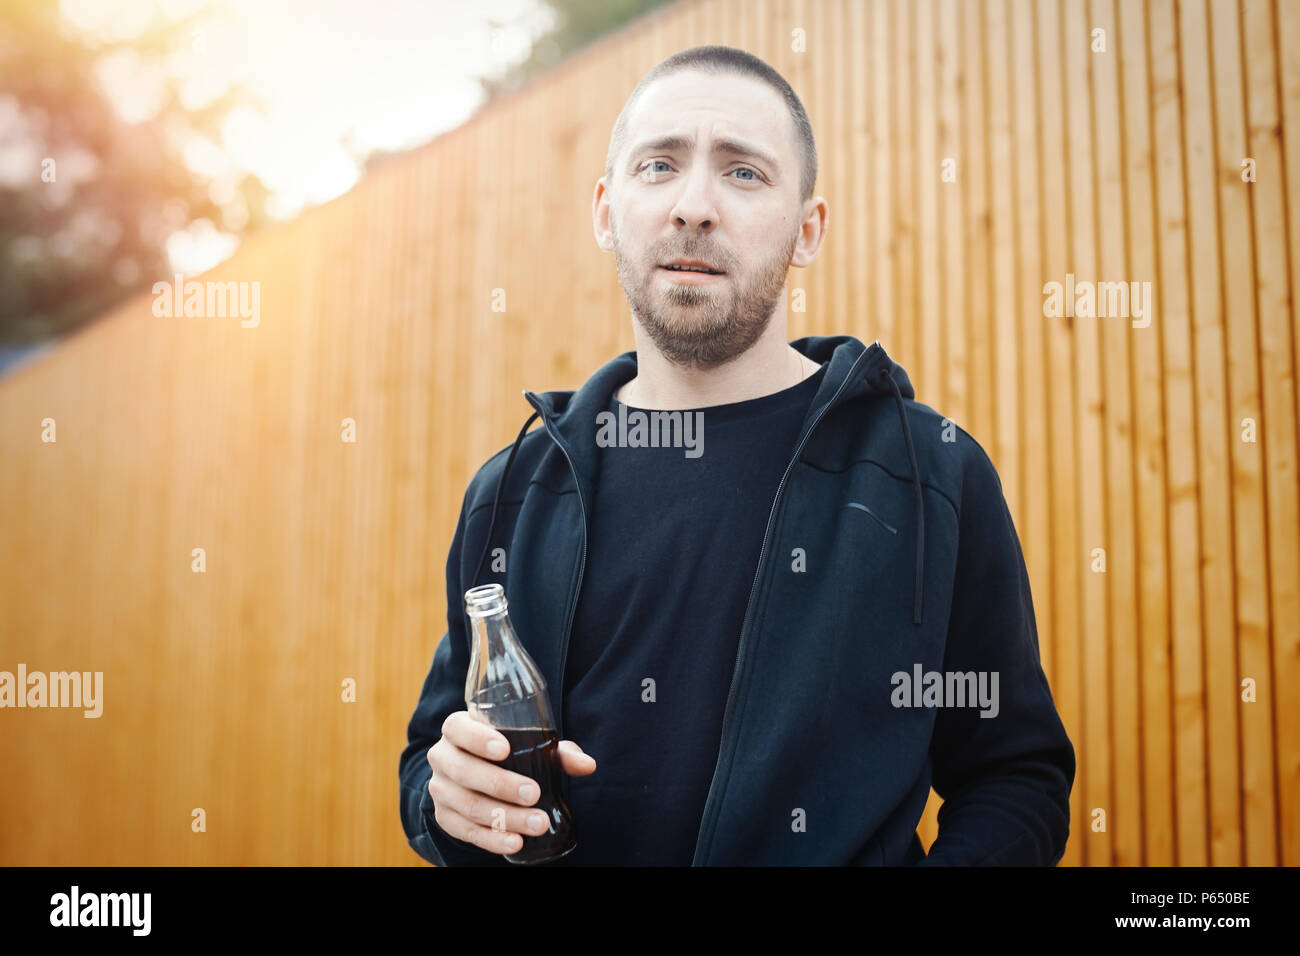 Bearded man holding cola bottle. - Stock Image